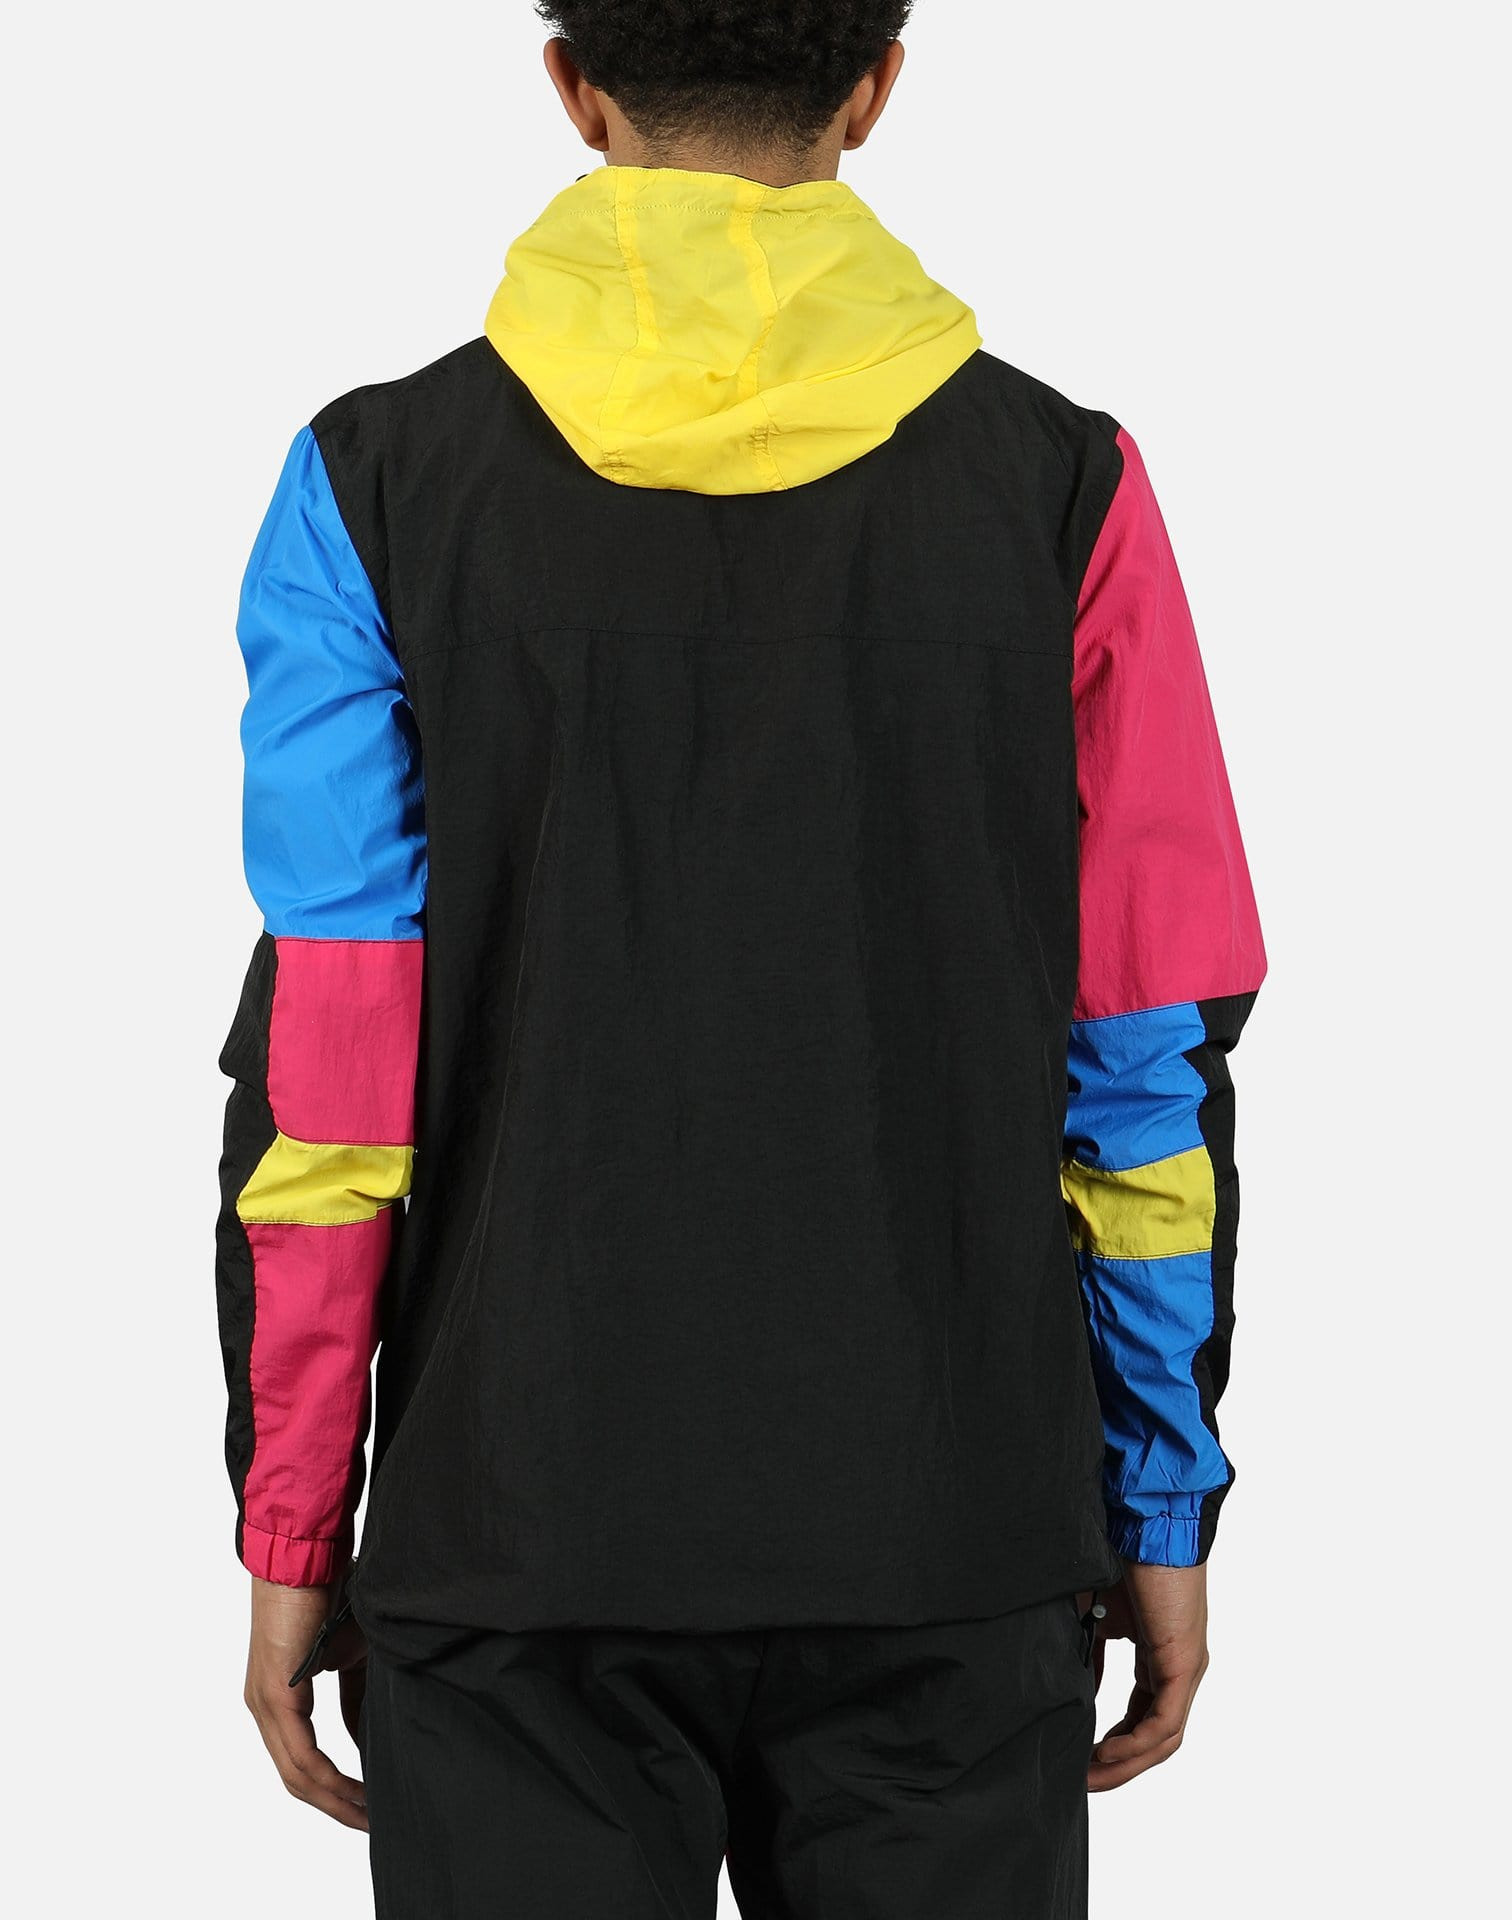 Black Pyramid Men's Tech Colorblock Pullover Jacket